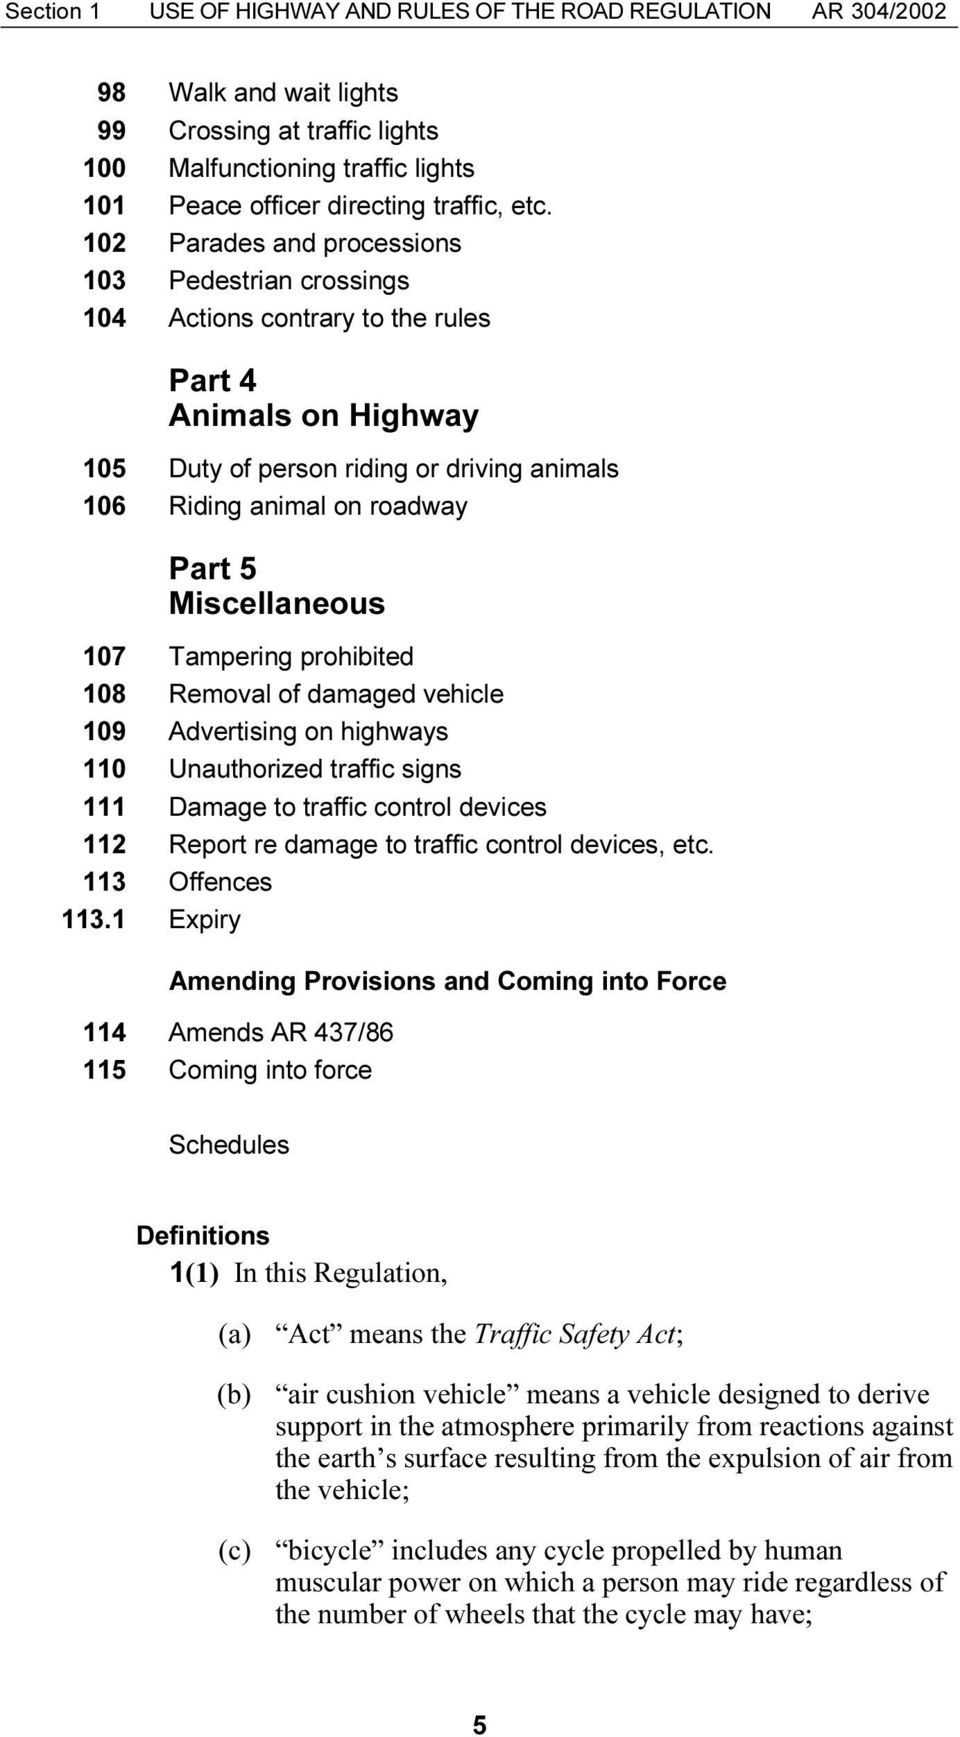 Miscellaneous 107 Tampering prohibited 108 Removal of damaged vehicle 109 Advertising on highways 110 Unauthorized traffic signs 111 Damage to traffic control devices 112 Report re damage to traffic